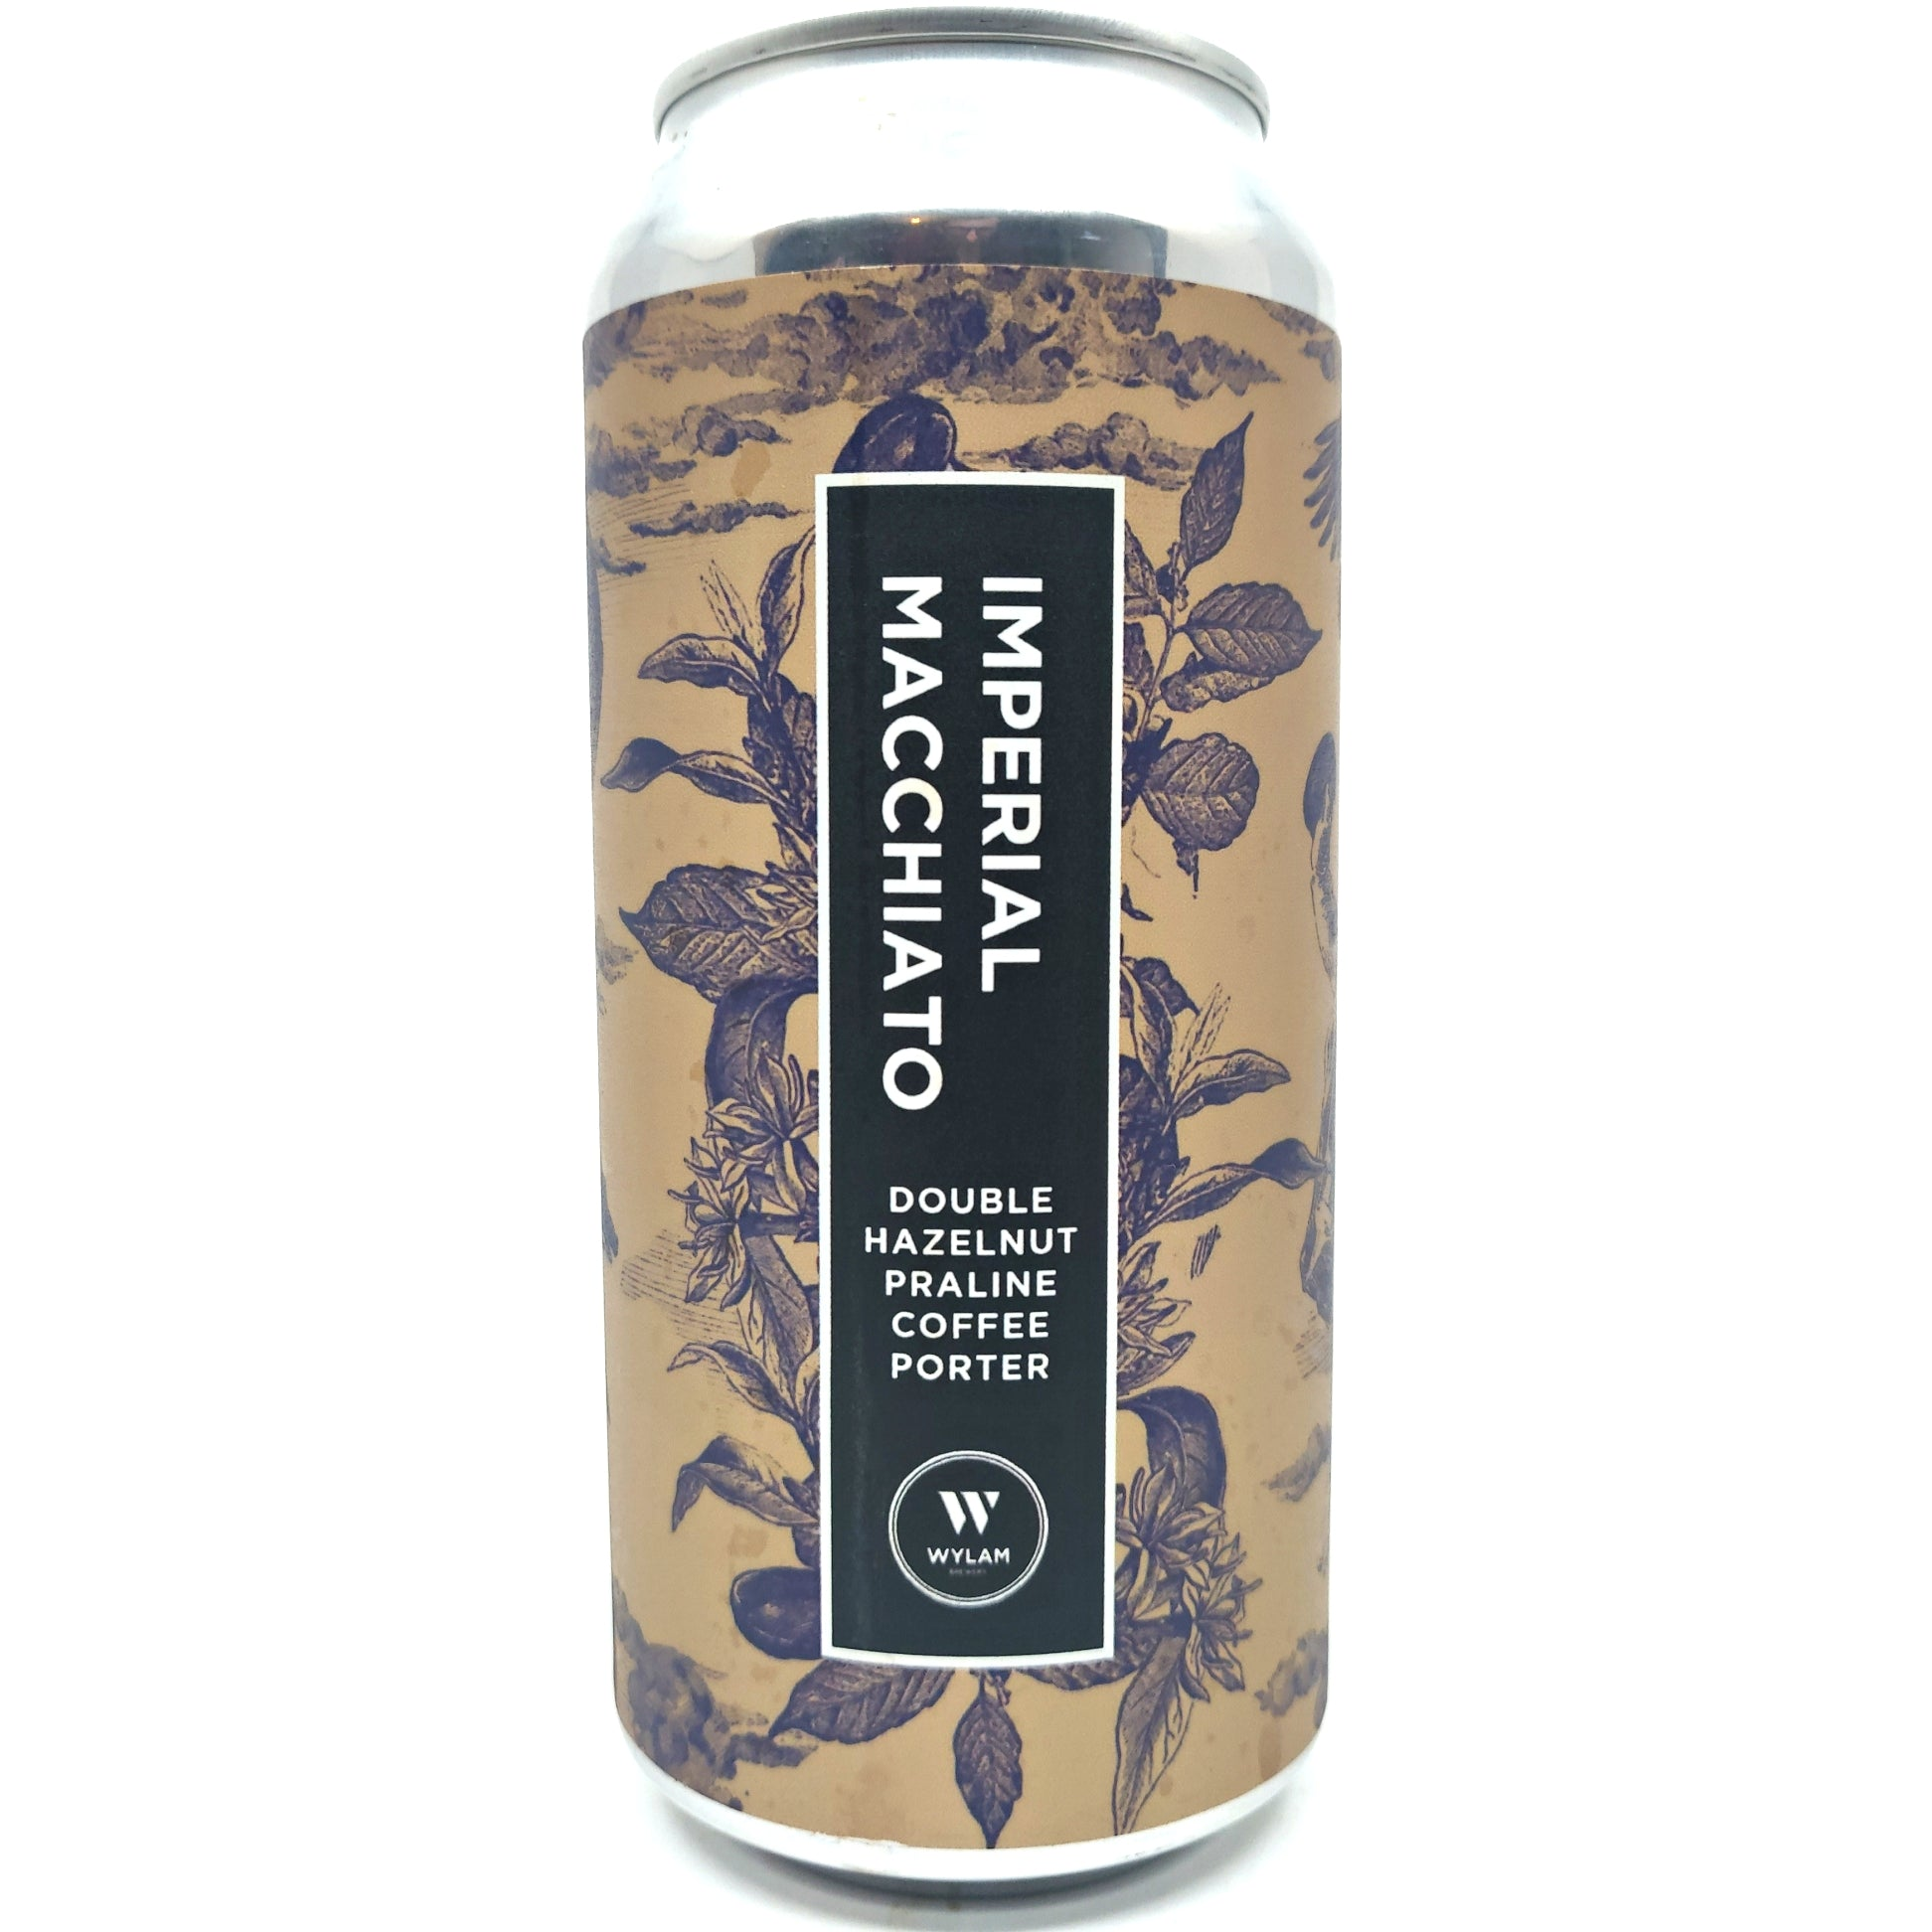 Wylam Imperial Macchiato Double Hazelnut Praline Coffee Porter 10% (440ml can)-Hop Burns & Black